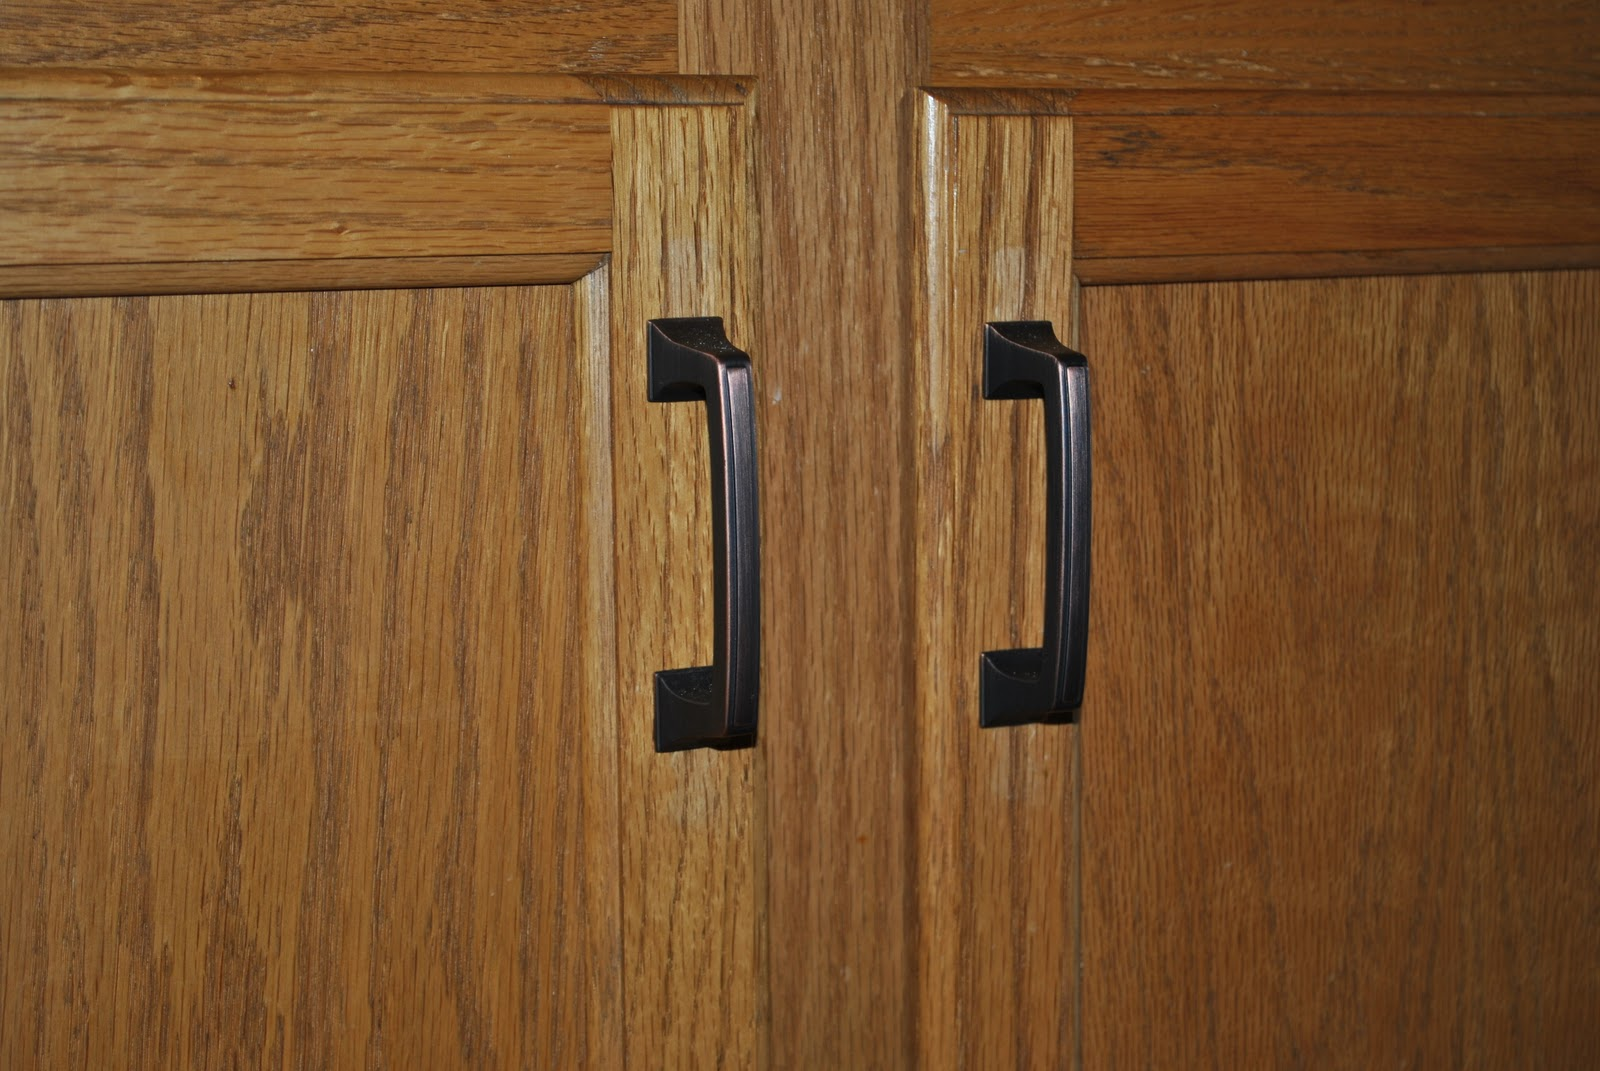 Oil Rubbed Bronze Kitchen Cabinet Handles A Simple Switch Changing Your Cabinet Hardware Jenna Burger